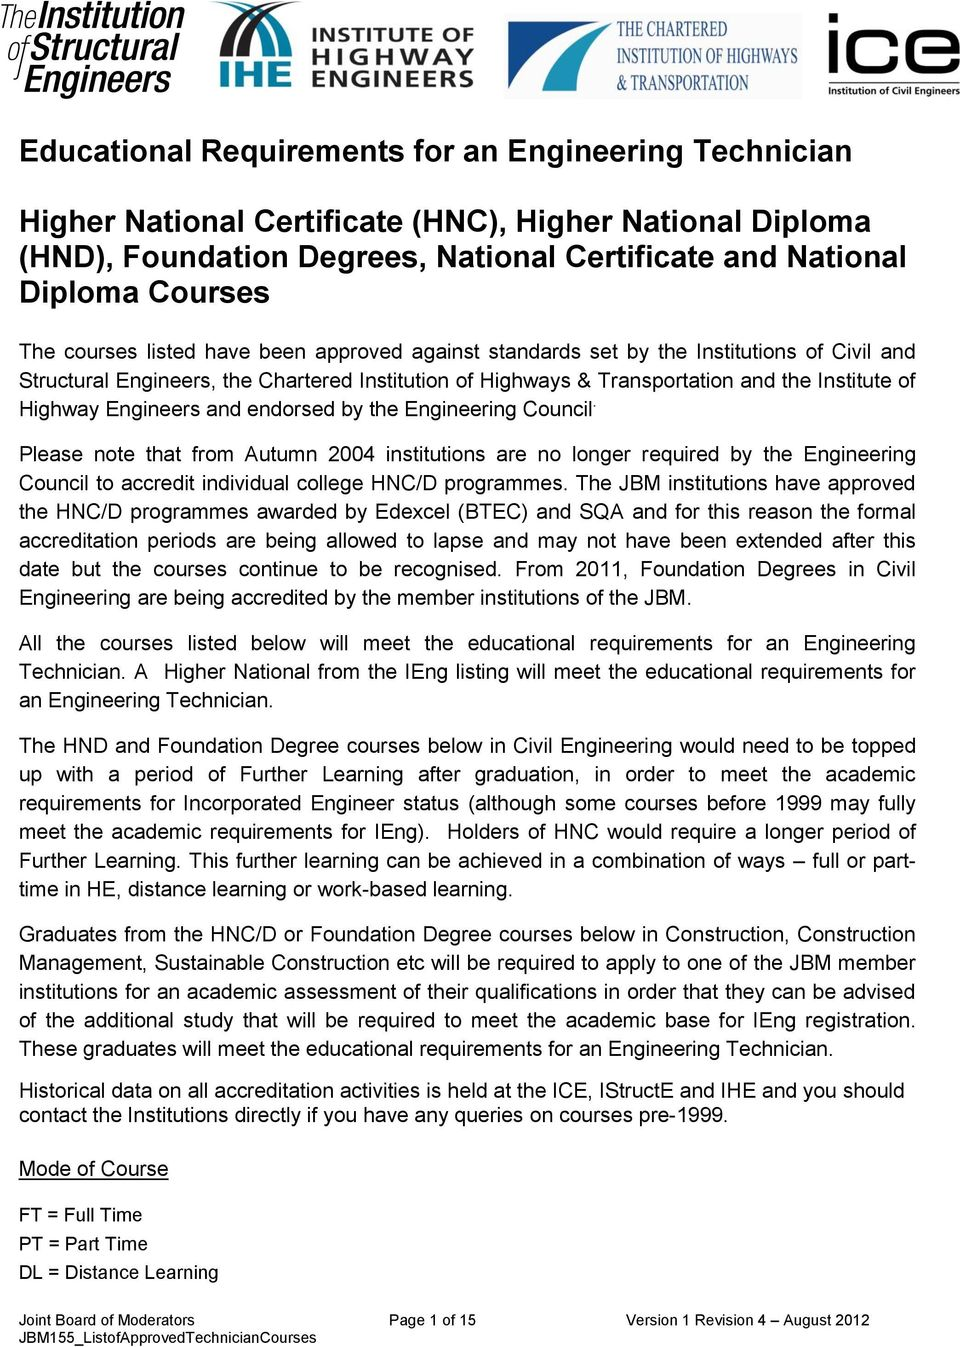 and endorsed by the Engineering Council. Please note that from Autumn 2004 institutions are no longer required by the Engineering Council to accredit individual college HNC/D programmes.